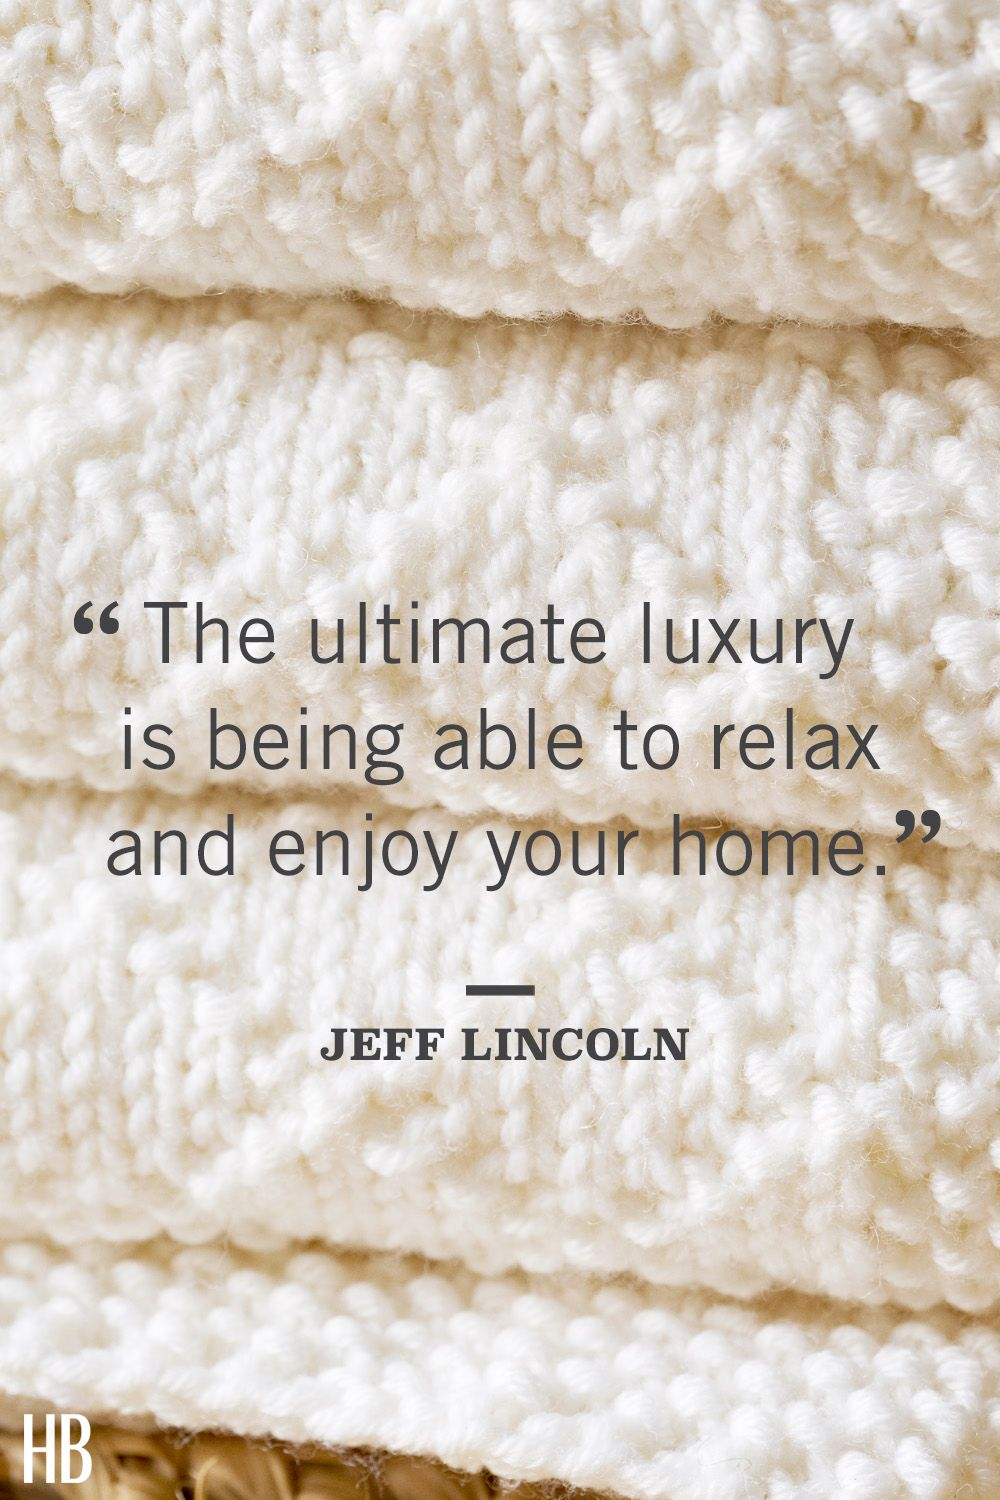 15 Best Home Quotes - Beautiful Sayings About Home Sweet Home Funny Sayings About Home Remodeling on funny quotes about relationships, funny sayings calendar, poems about home, cute sayings for new home, funny sayings of the day, funny memes about home, sweet sayings about home, funny sayings people, sayings about your home, proverbs about home, christmas sayings about home, wise sayings about home, funny sayings family, love quotes about home, funny sayings history, funny quotes about the day, inspirational sayings about home, funny sayings and phrases, funny signs about home, irish sayings about home,